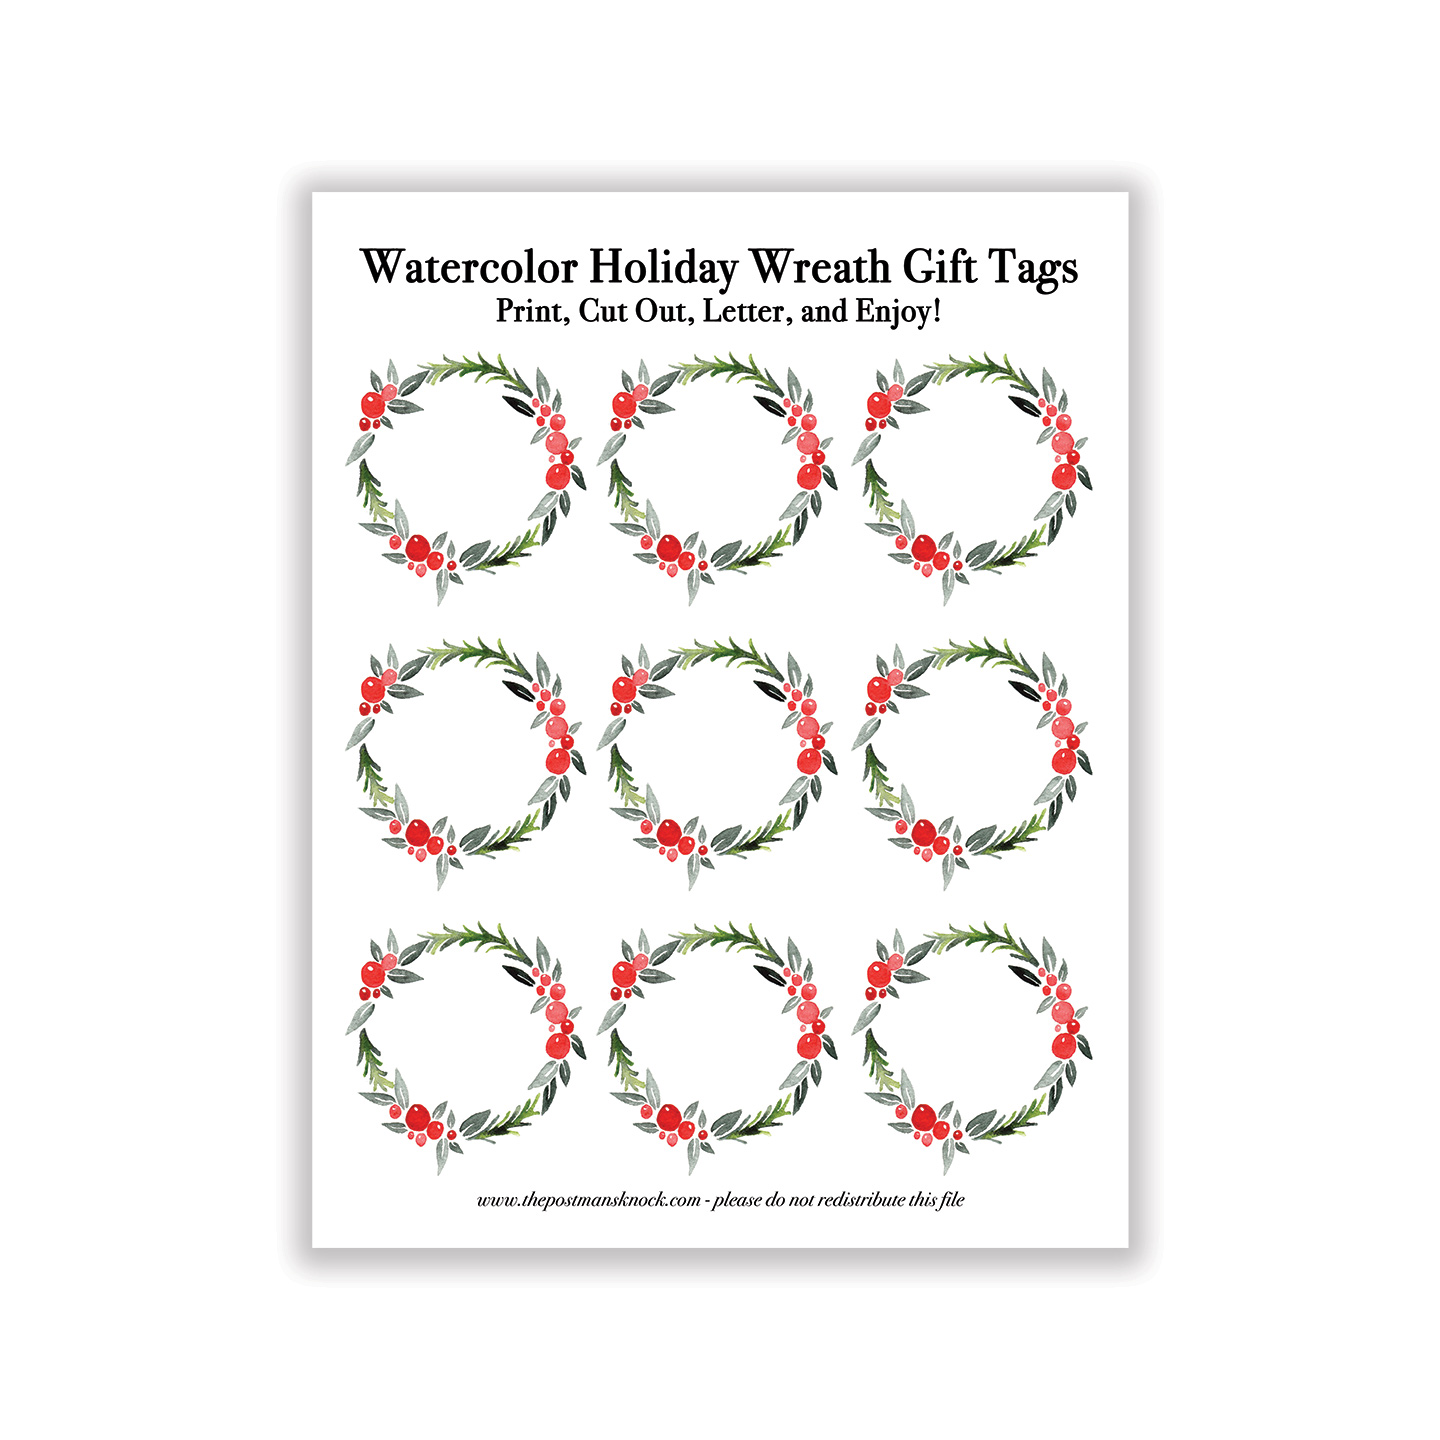 graphic regarding Holiday Tags Printable identified as Printable Watercolor Family vacation Wreath Present Tags